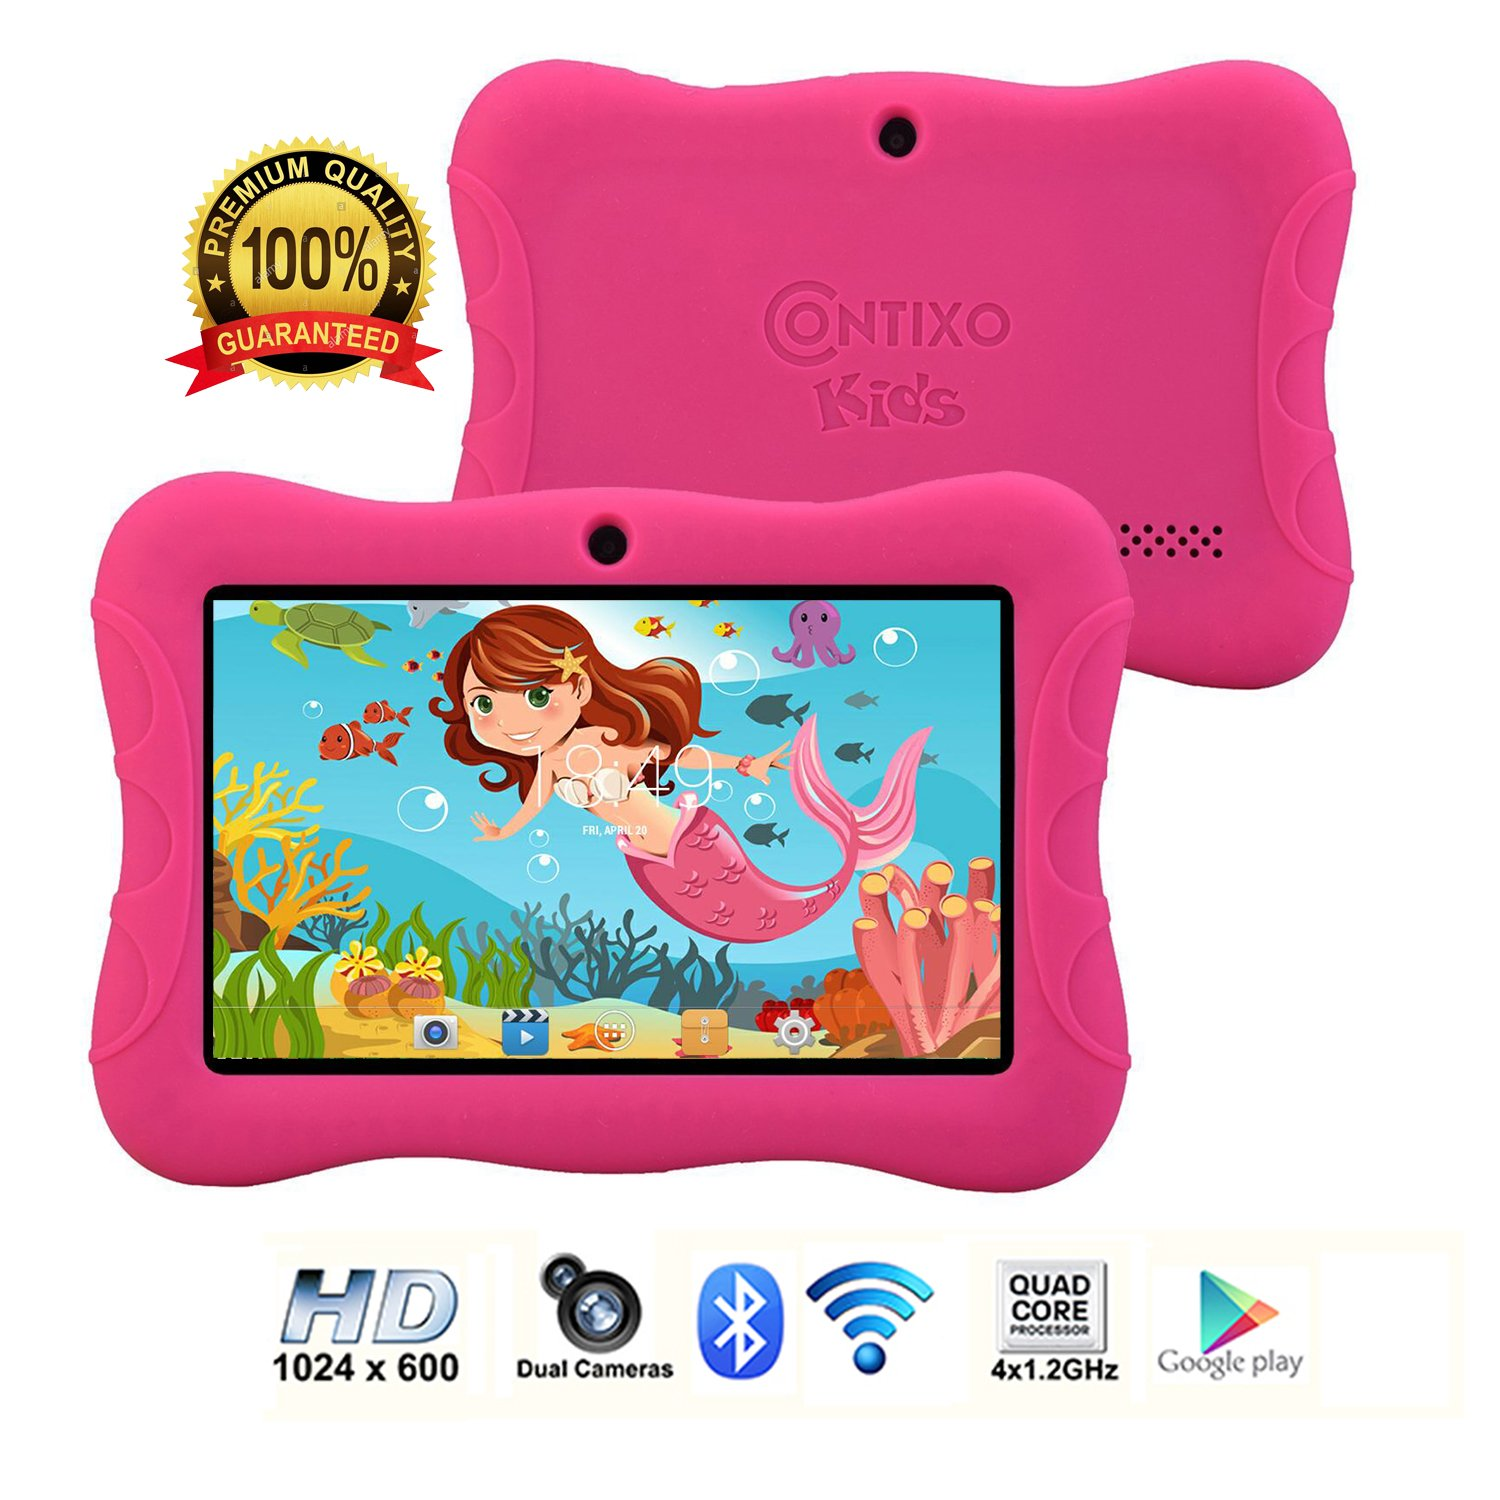 Contixo Kids Tablet K3 | 7'' Display Android 6.0 Bluetooth WiFi Camera Parental Control for Children Infant Toddlers w/Free Tablet Case (Pink)